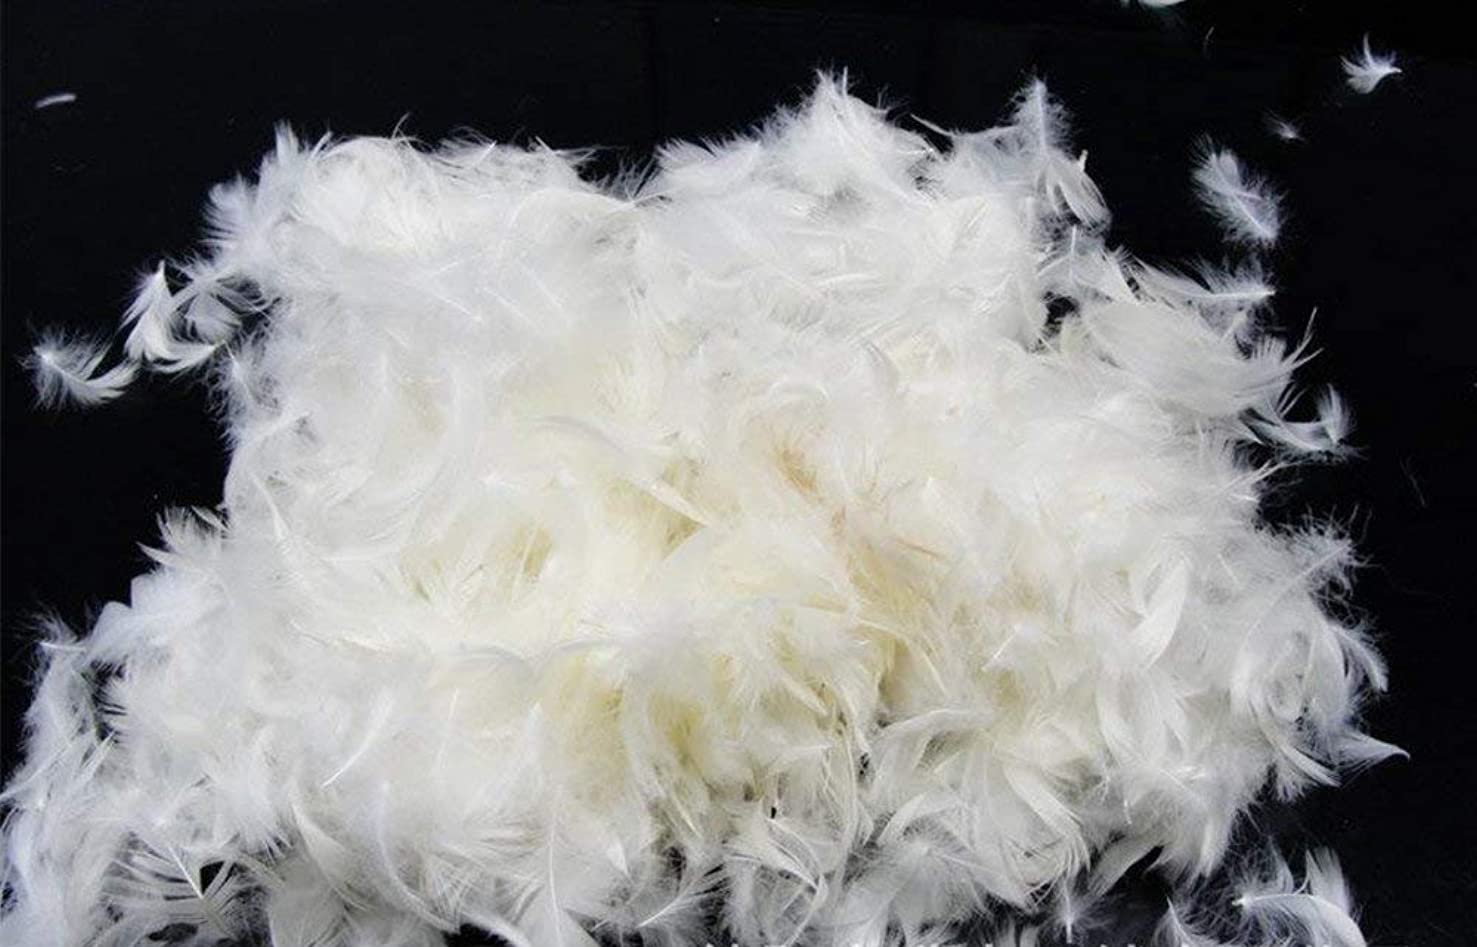 Bulk Natural 5% White Goose Down Feather Filling DIY - Make Your Pillow, Comforter, Sleeping Bag and More (1/2lb)